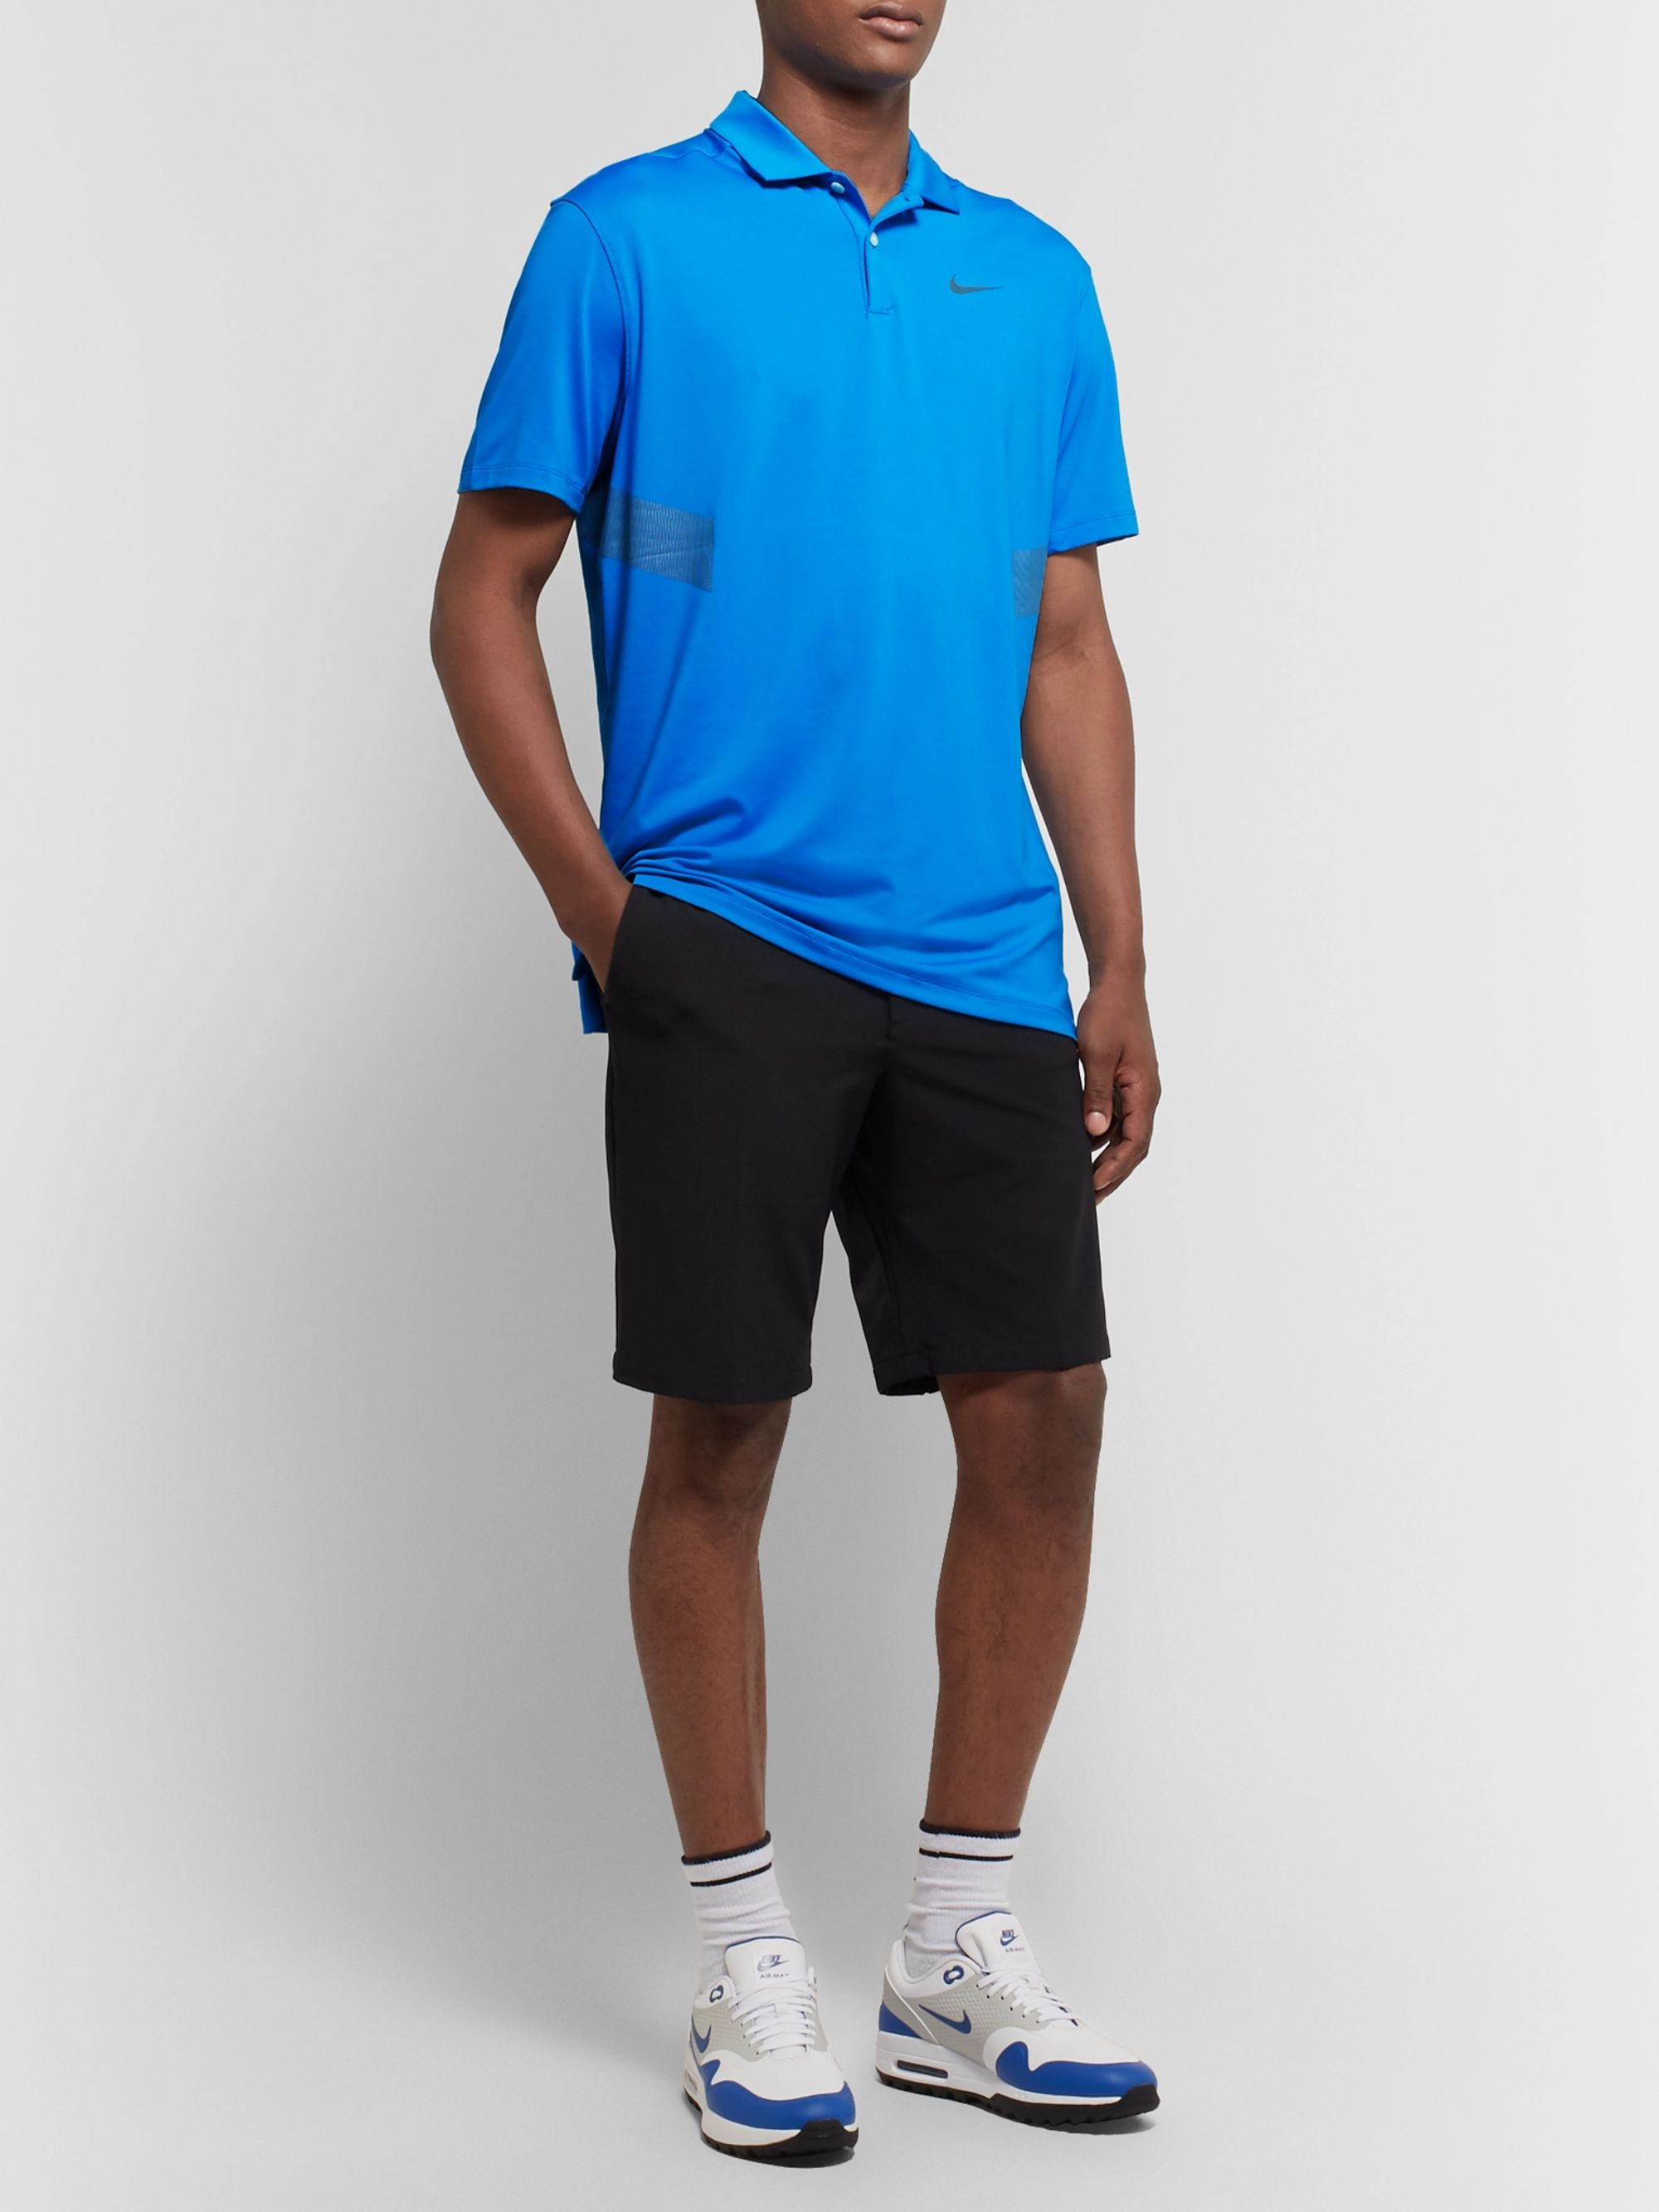 Nike Golf Vapor Printed Dri-FIT Polo Shirt